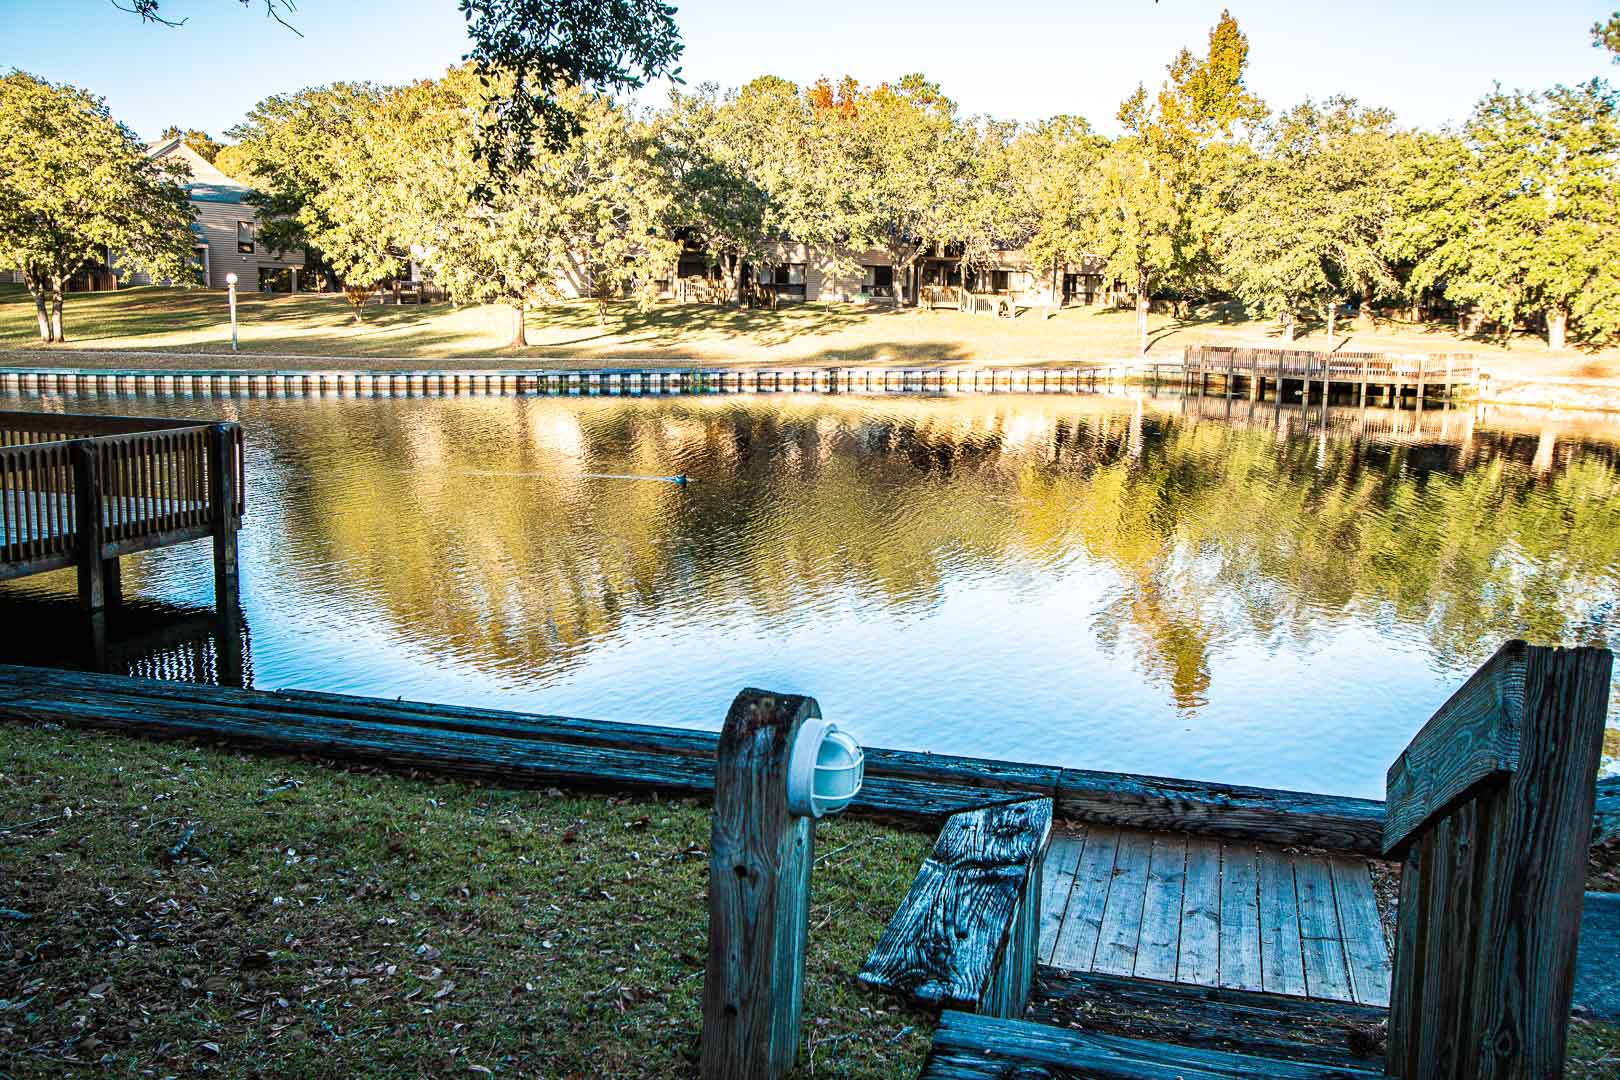 A peaceful view of the lake at VRI's Waterwood Townhomes in New Bern, North Carolina.